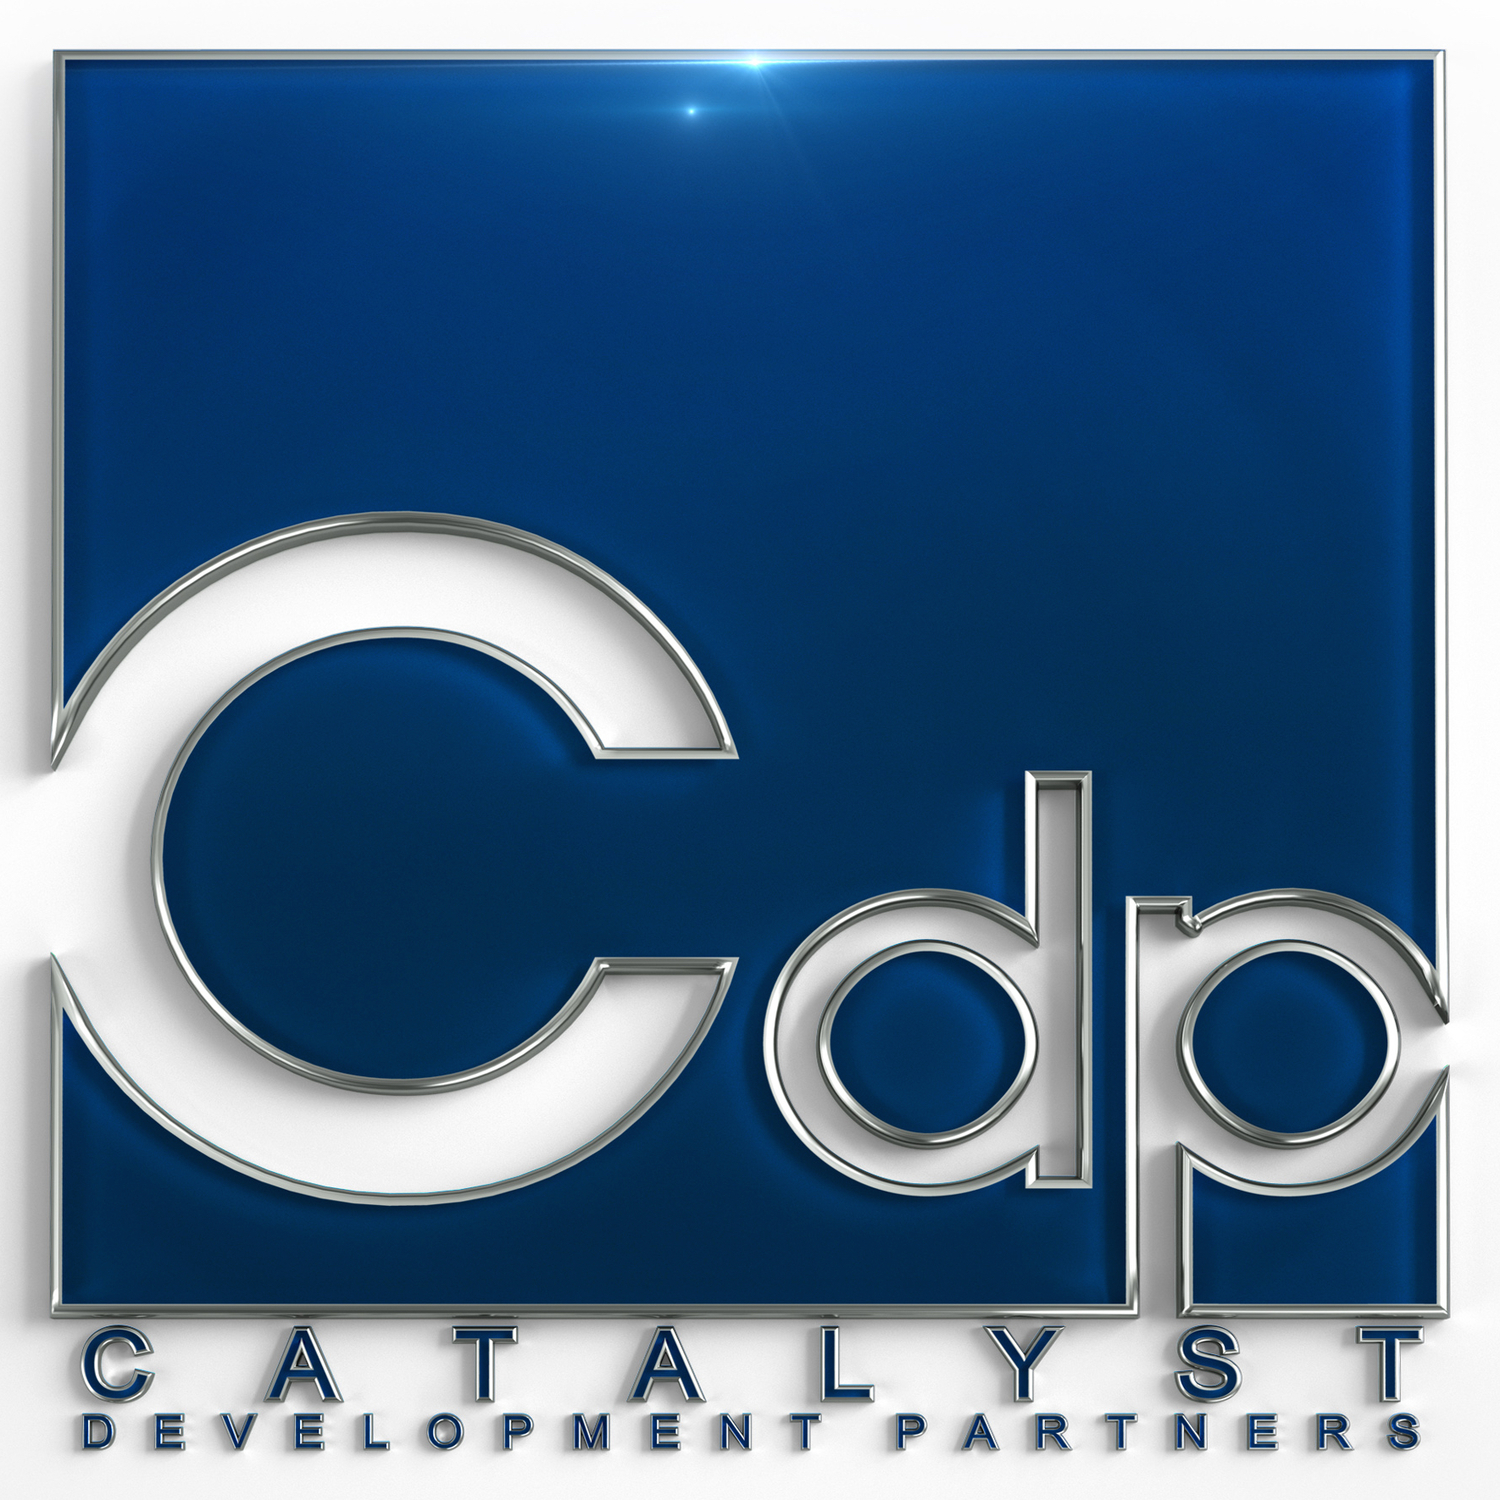 Catalyst Development Partners